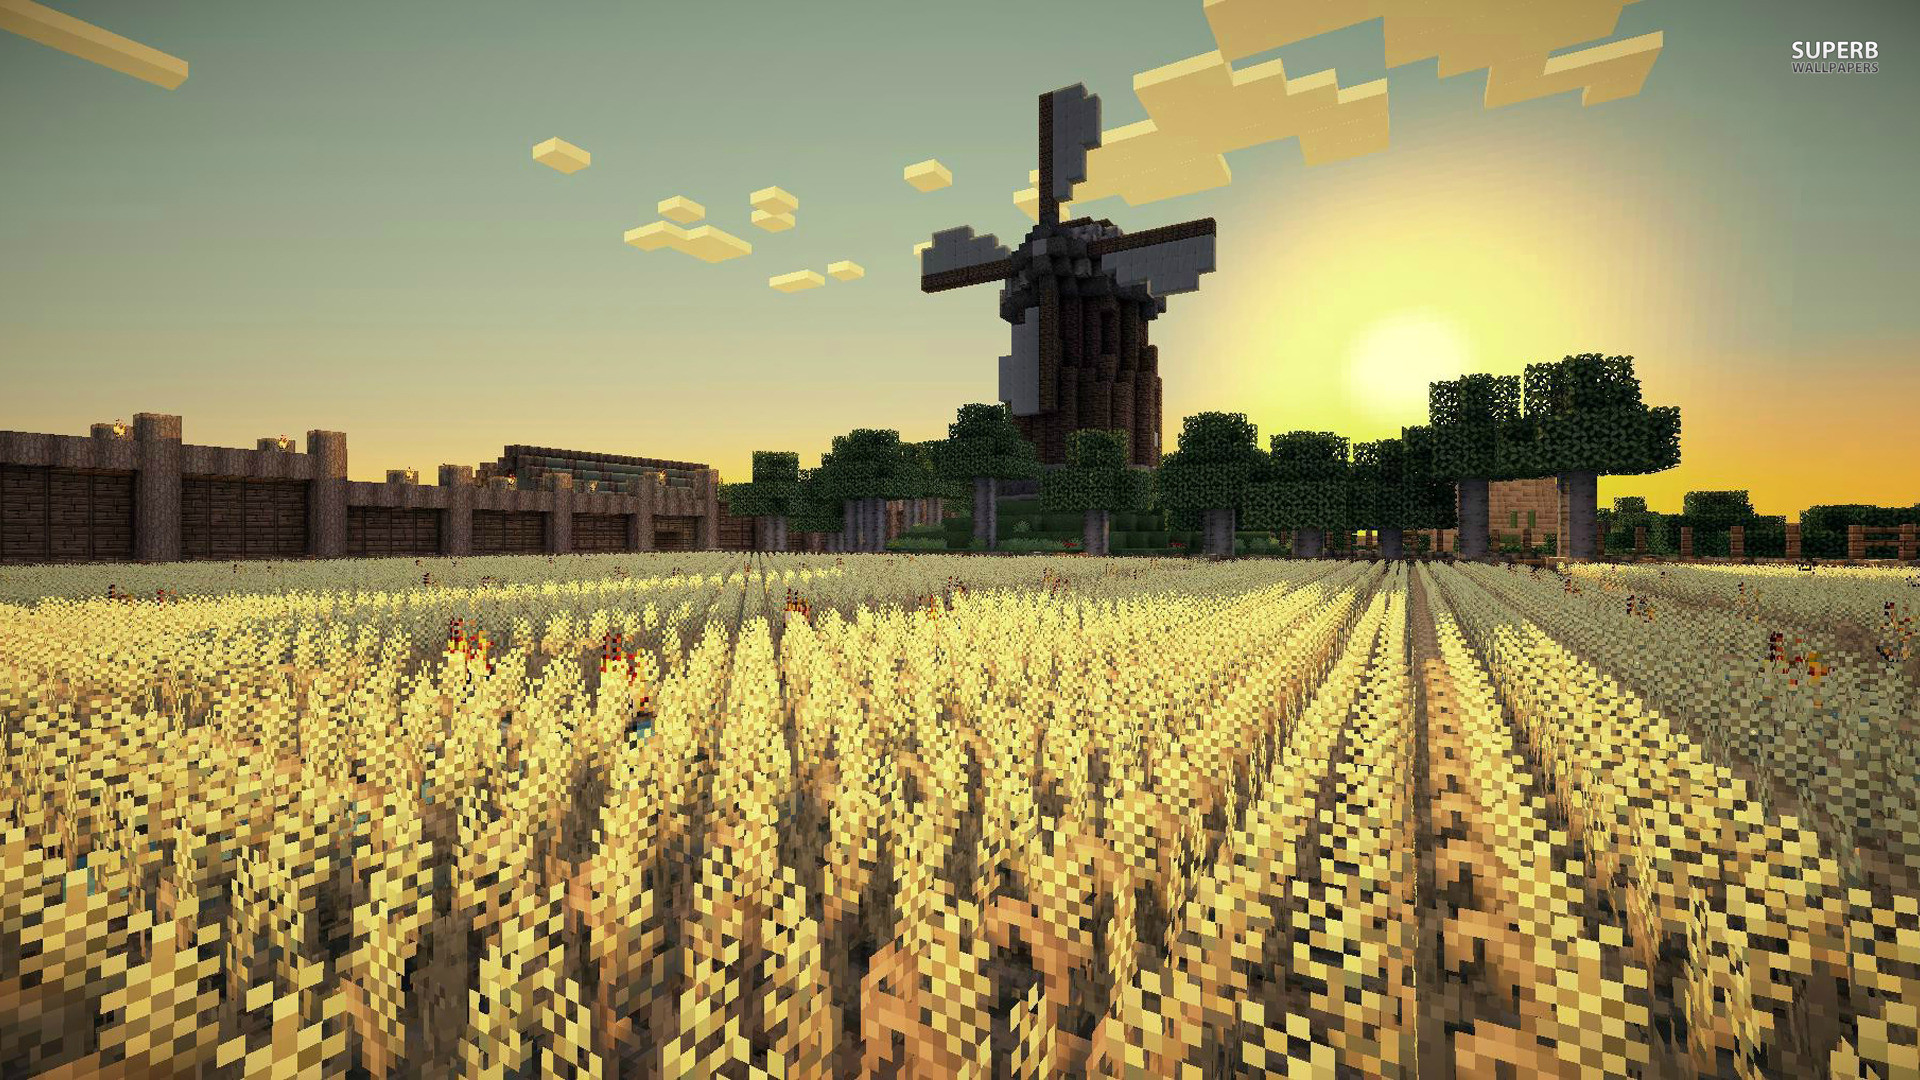 1920x1080 Related dynasty warriors 7 wallpapers 14 by MIW. minecraft wallpapers 14